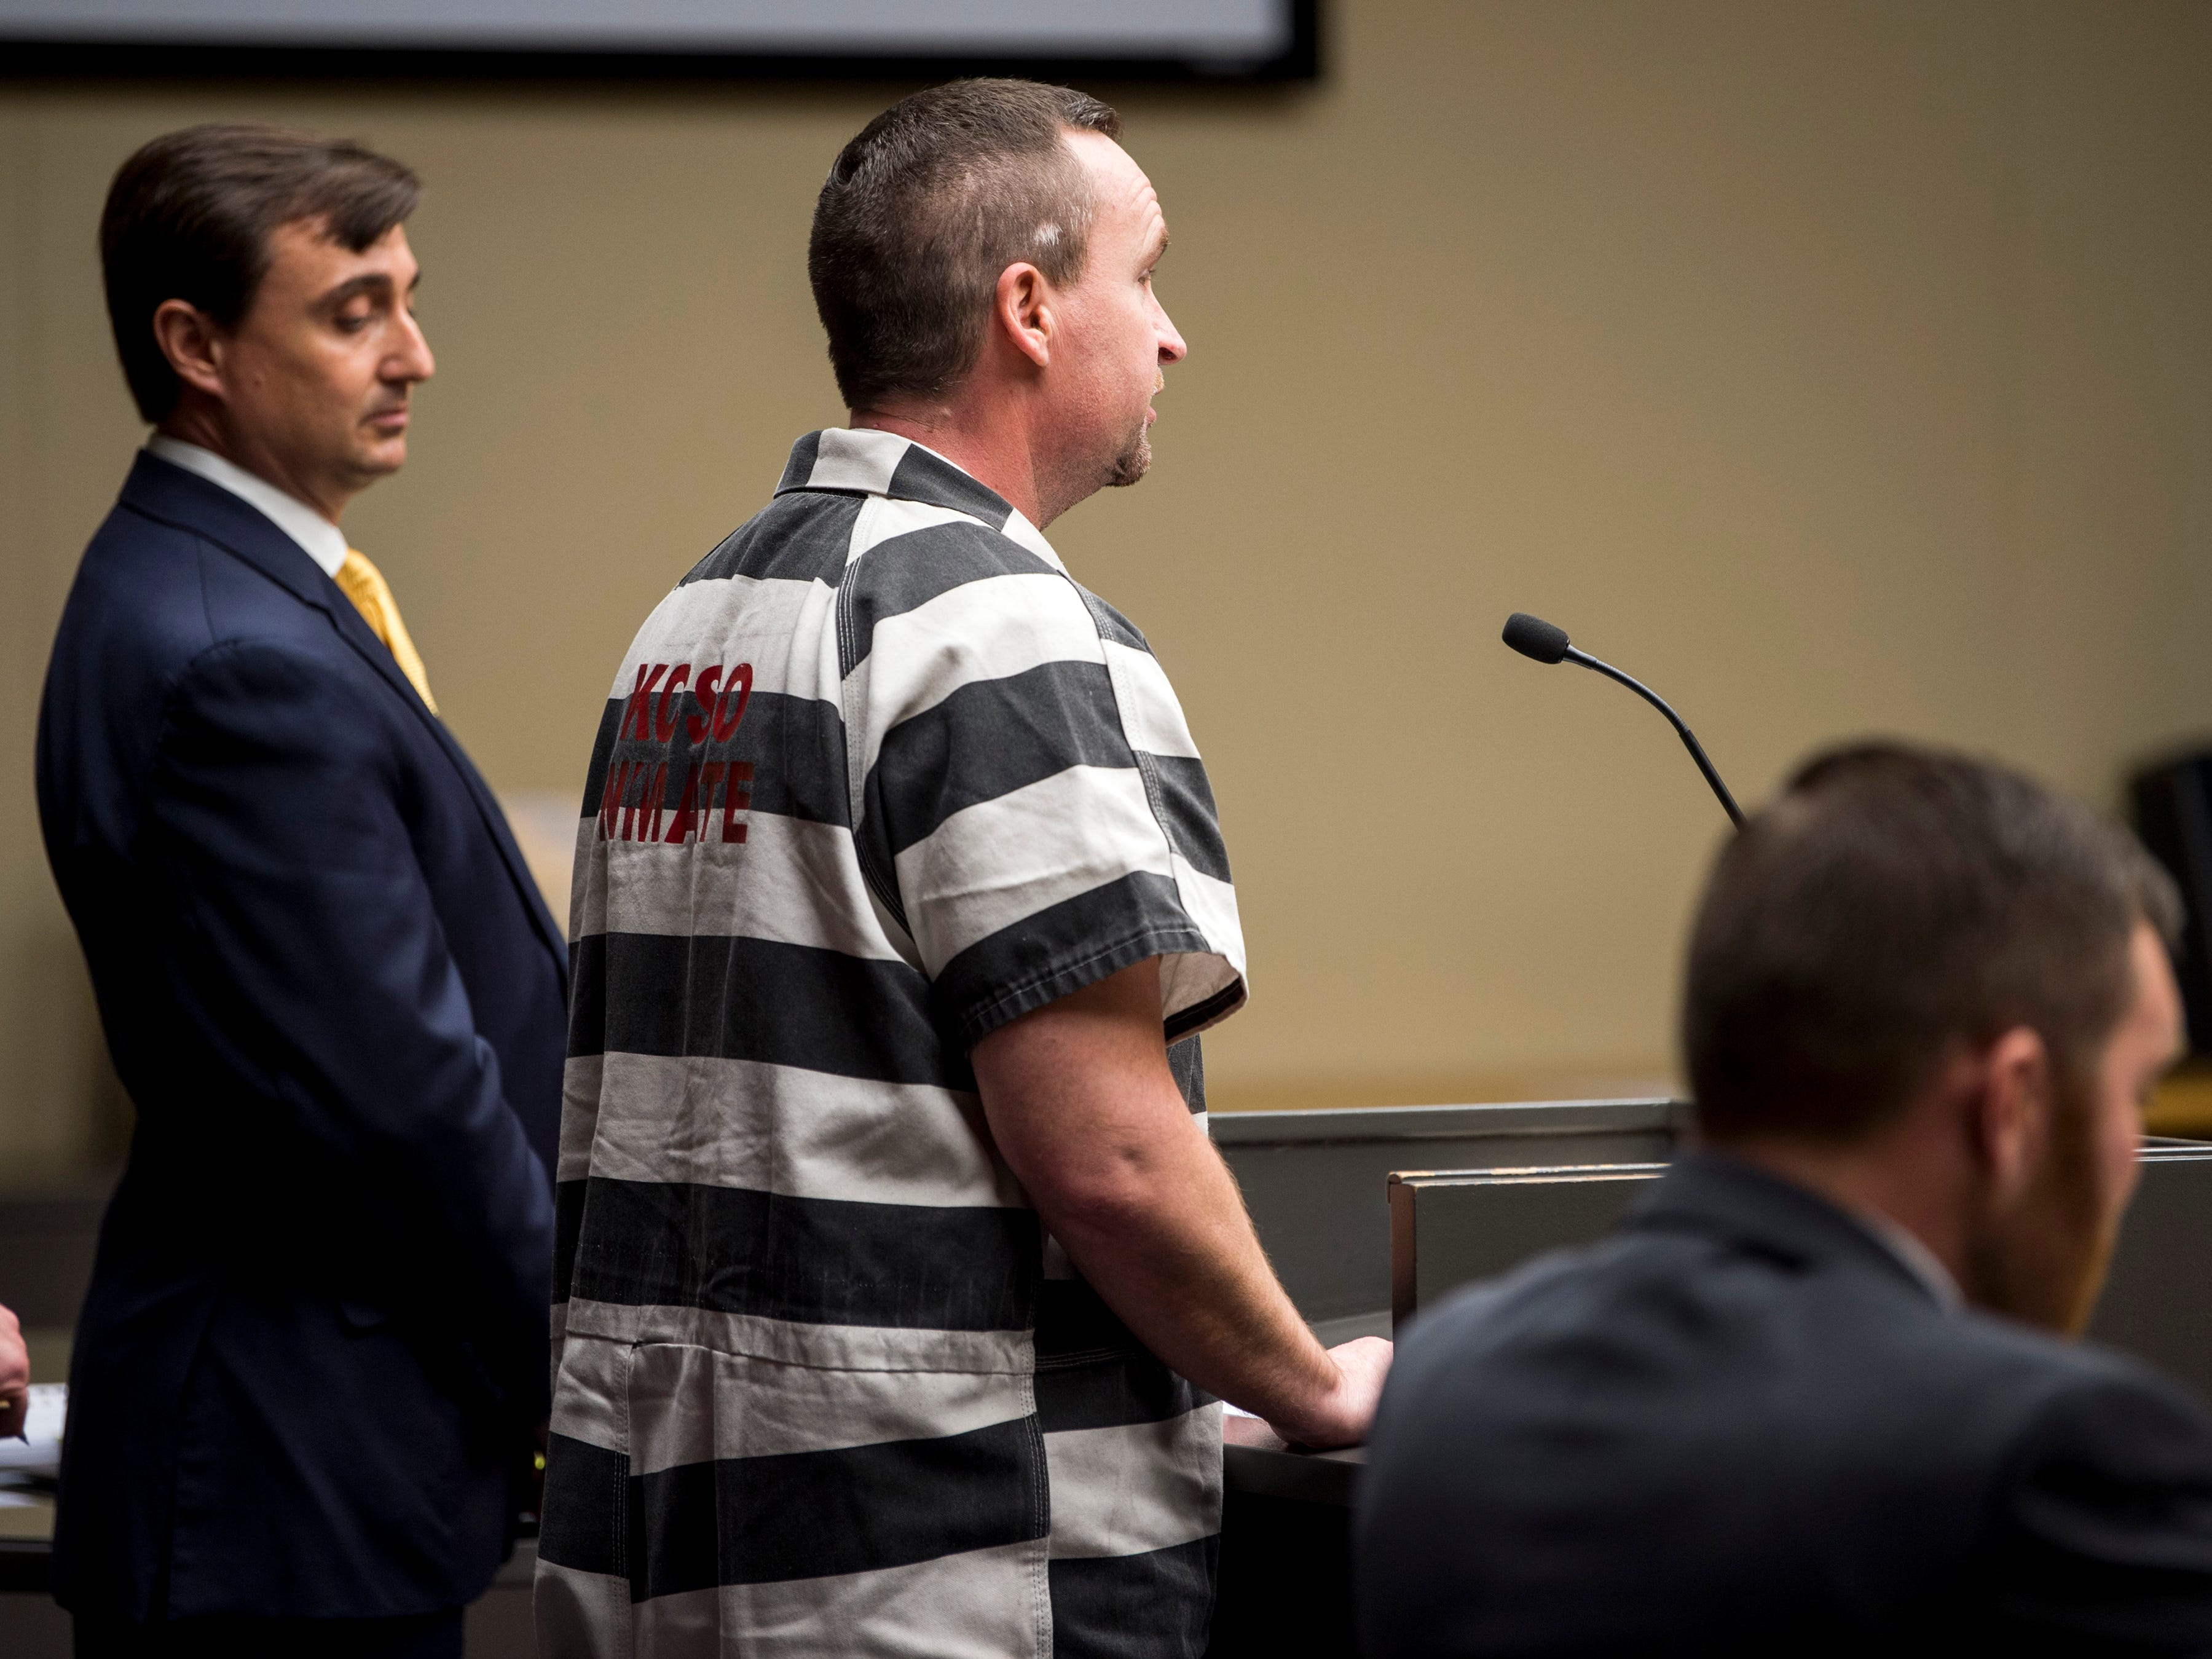 David Lynn Richards, center, speaks during his sentencing hearing in Knox County Criminal Court on Thursday, May 9, 2019.